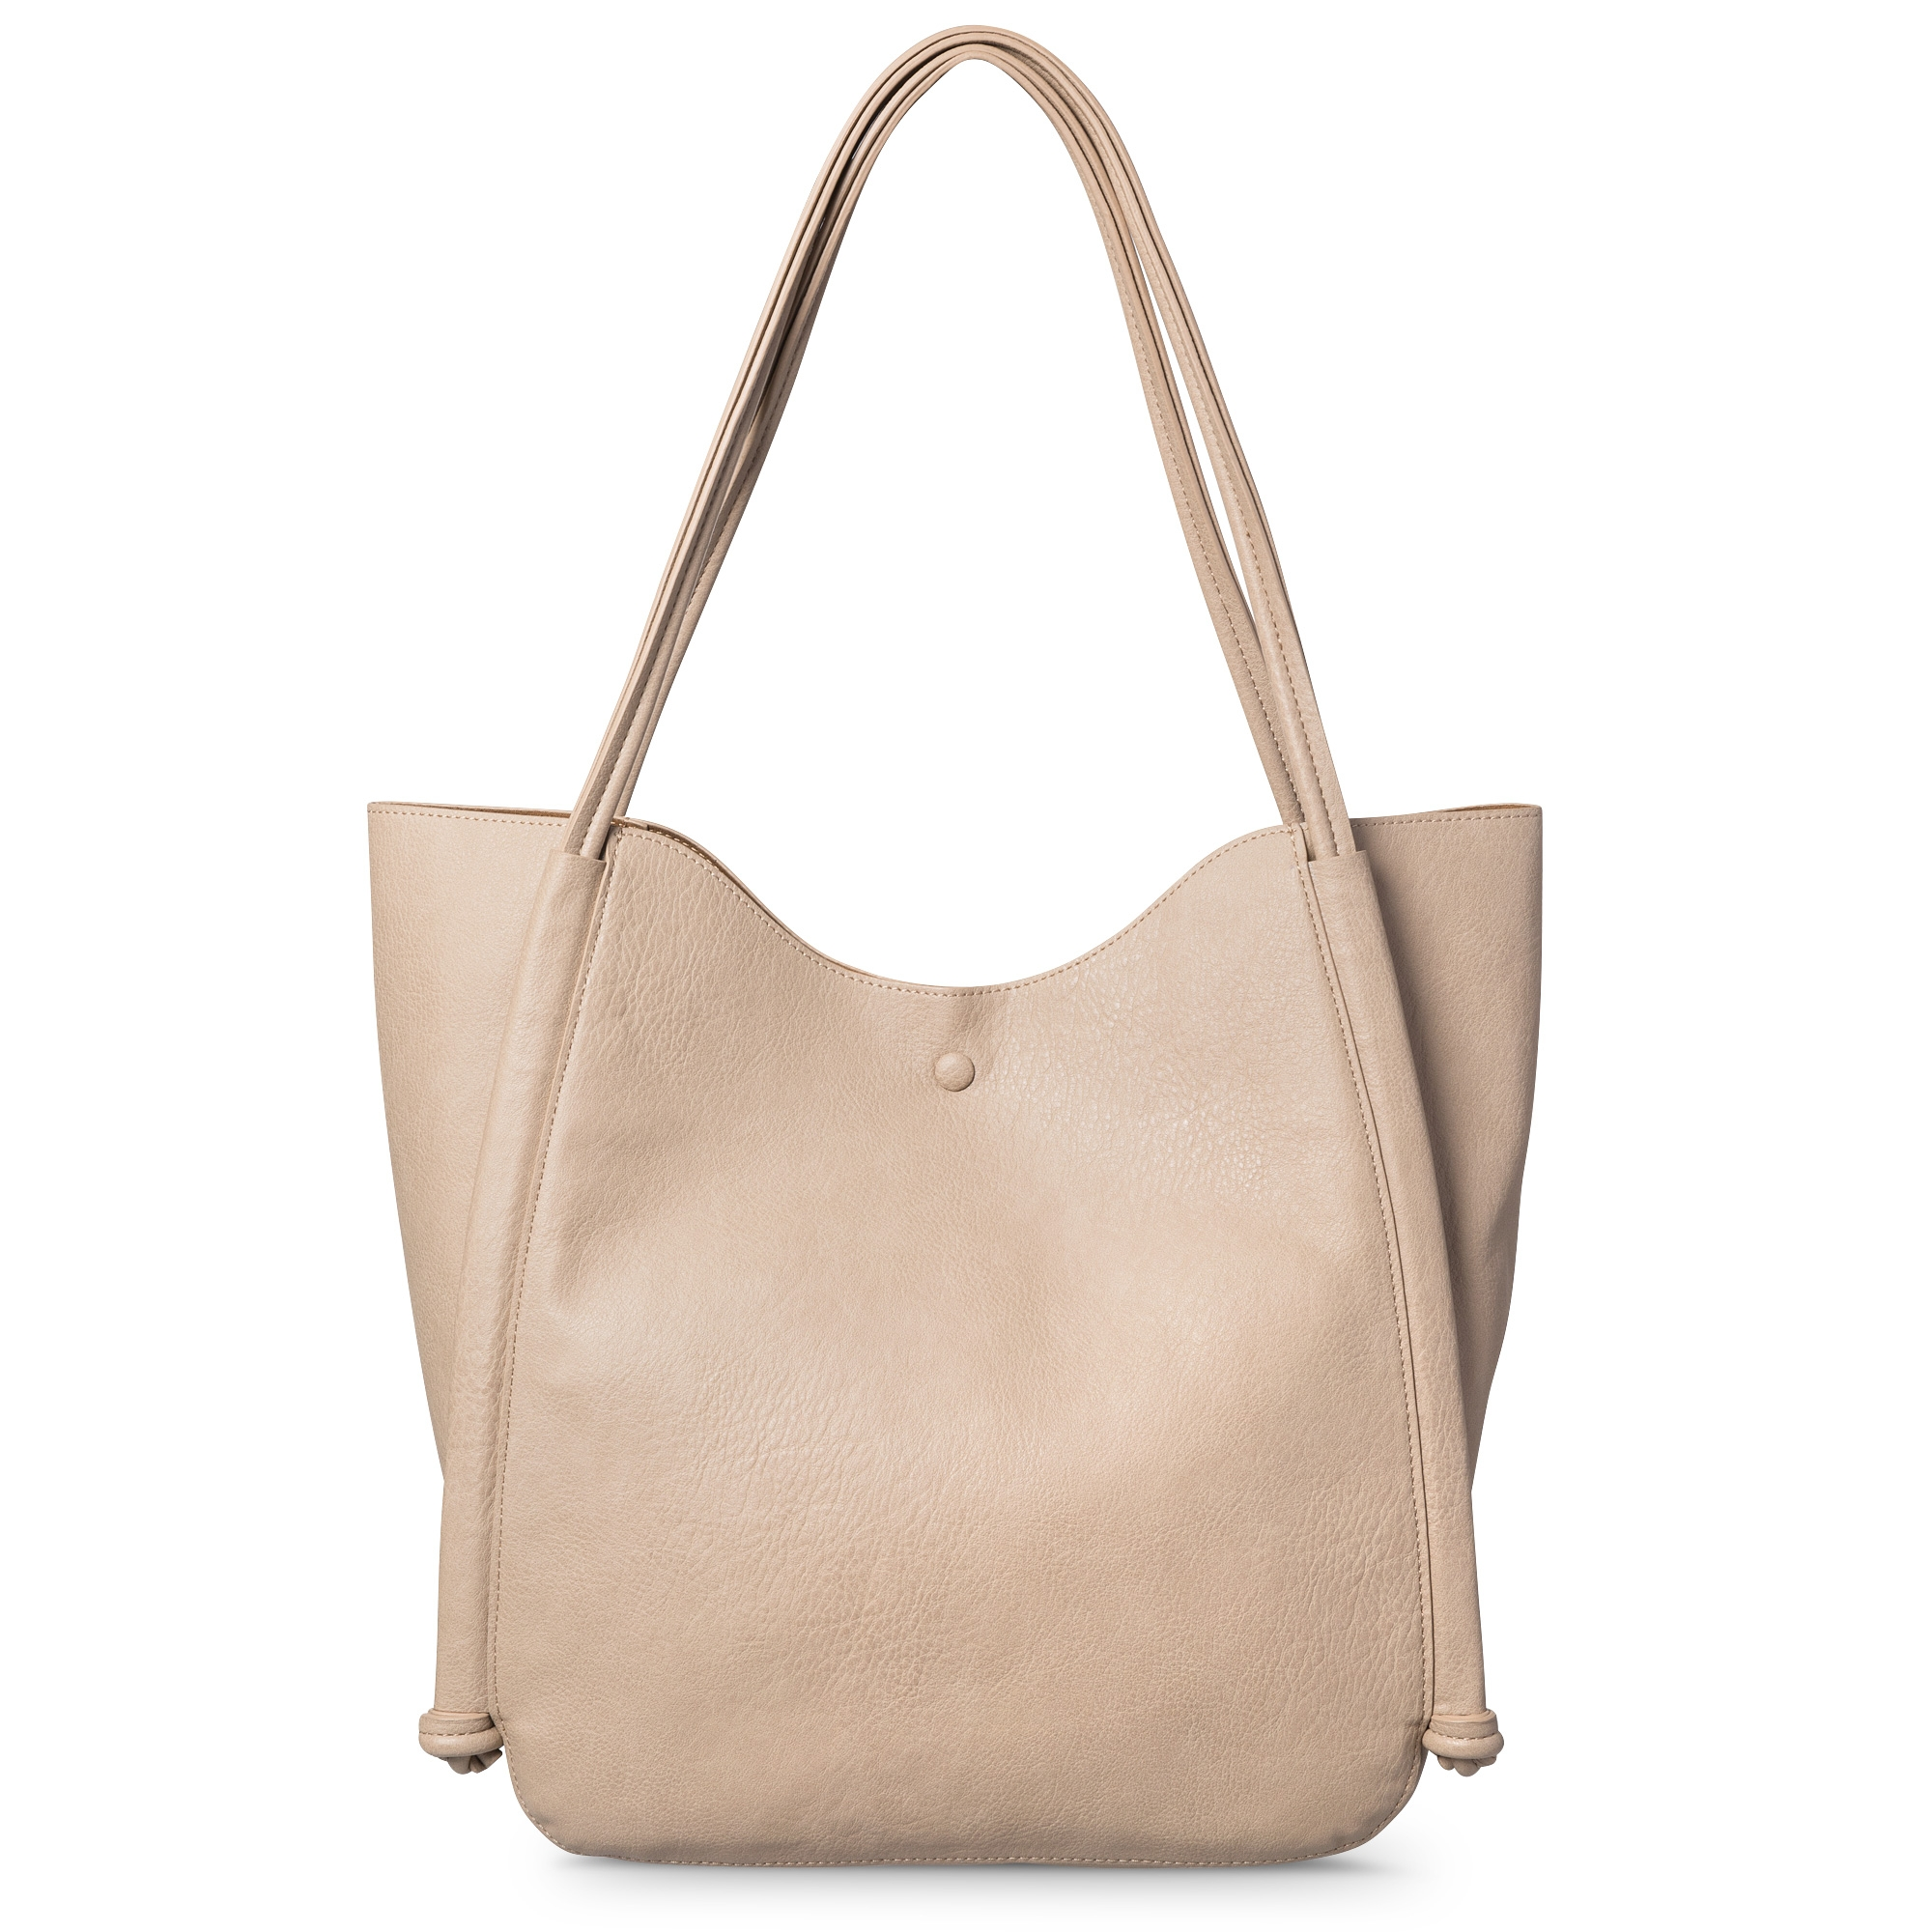 Silver leather tote bag uk - Marlin Knot Handle Tote Bag